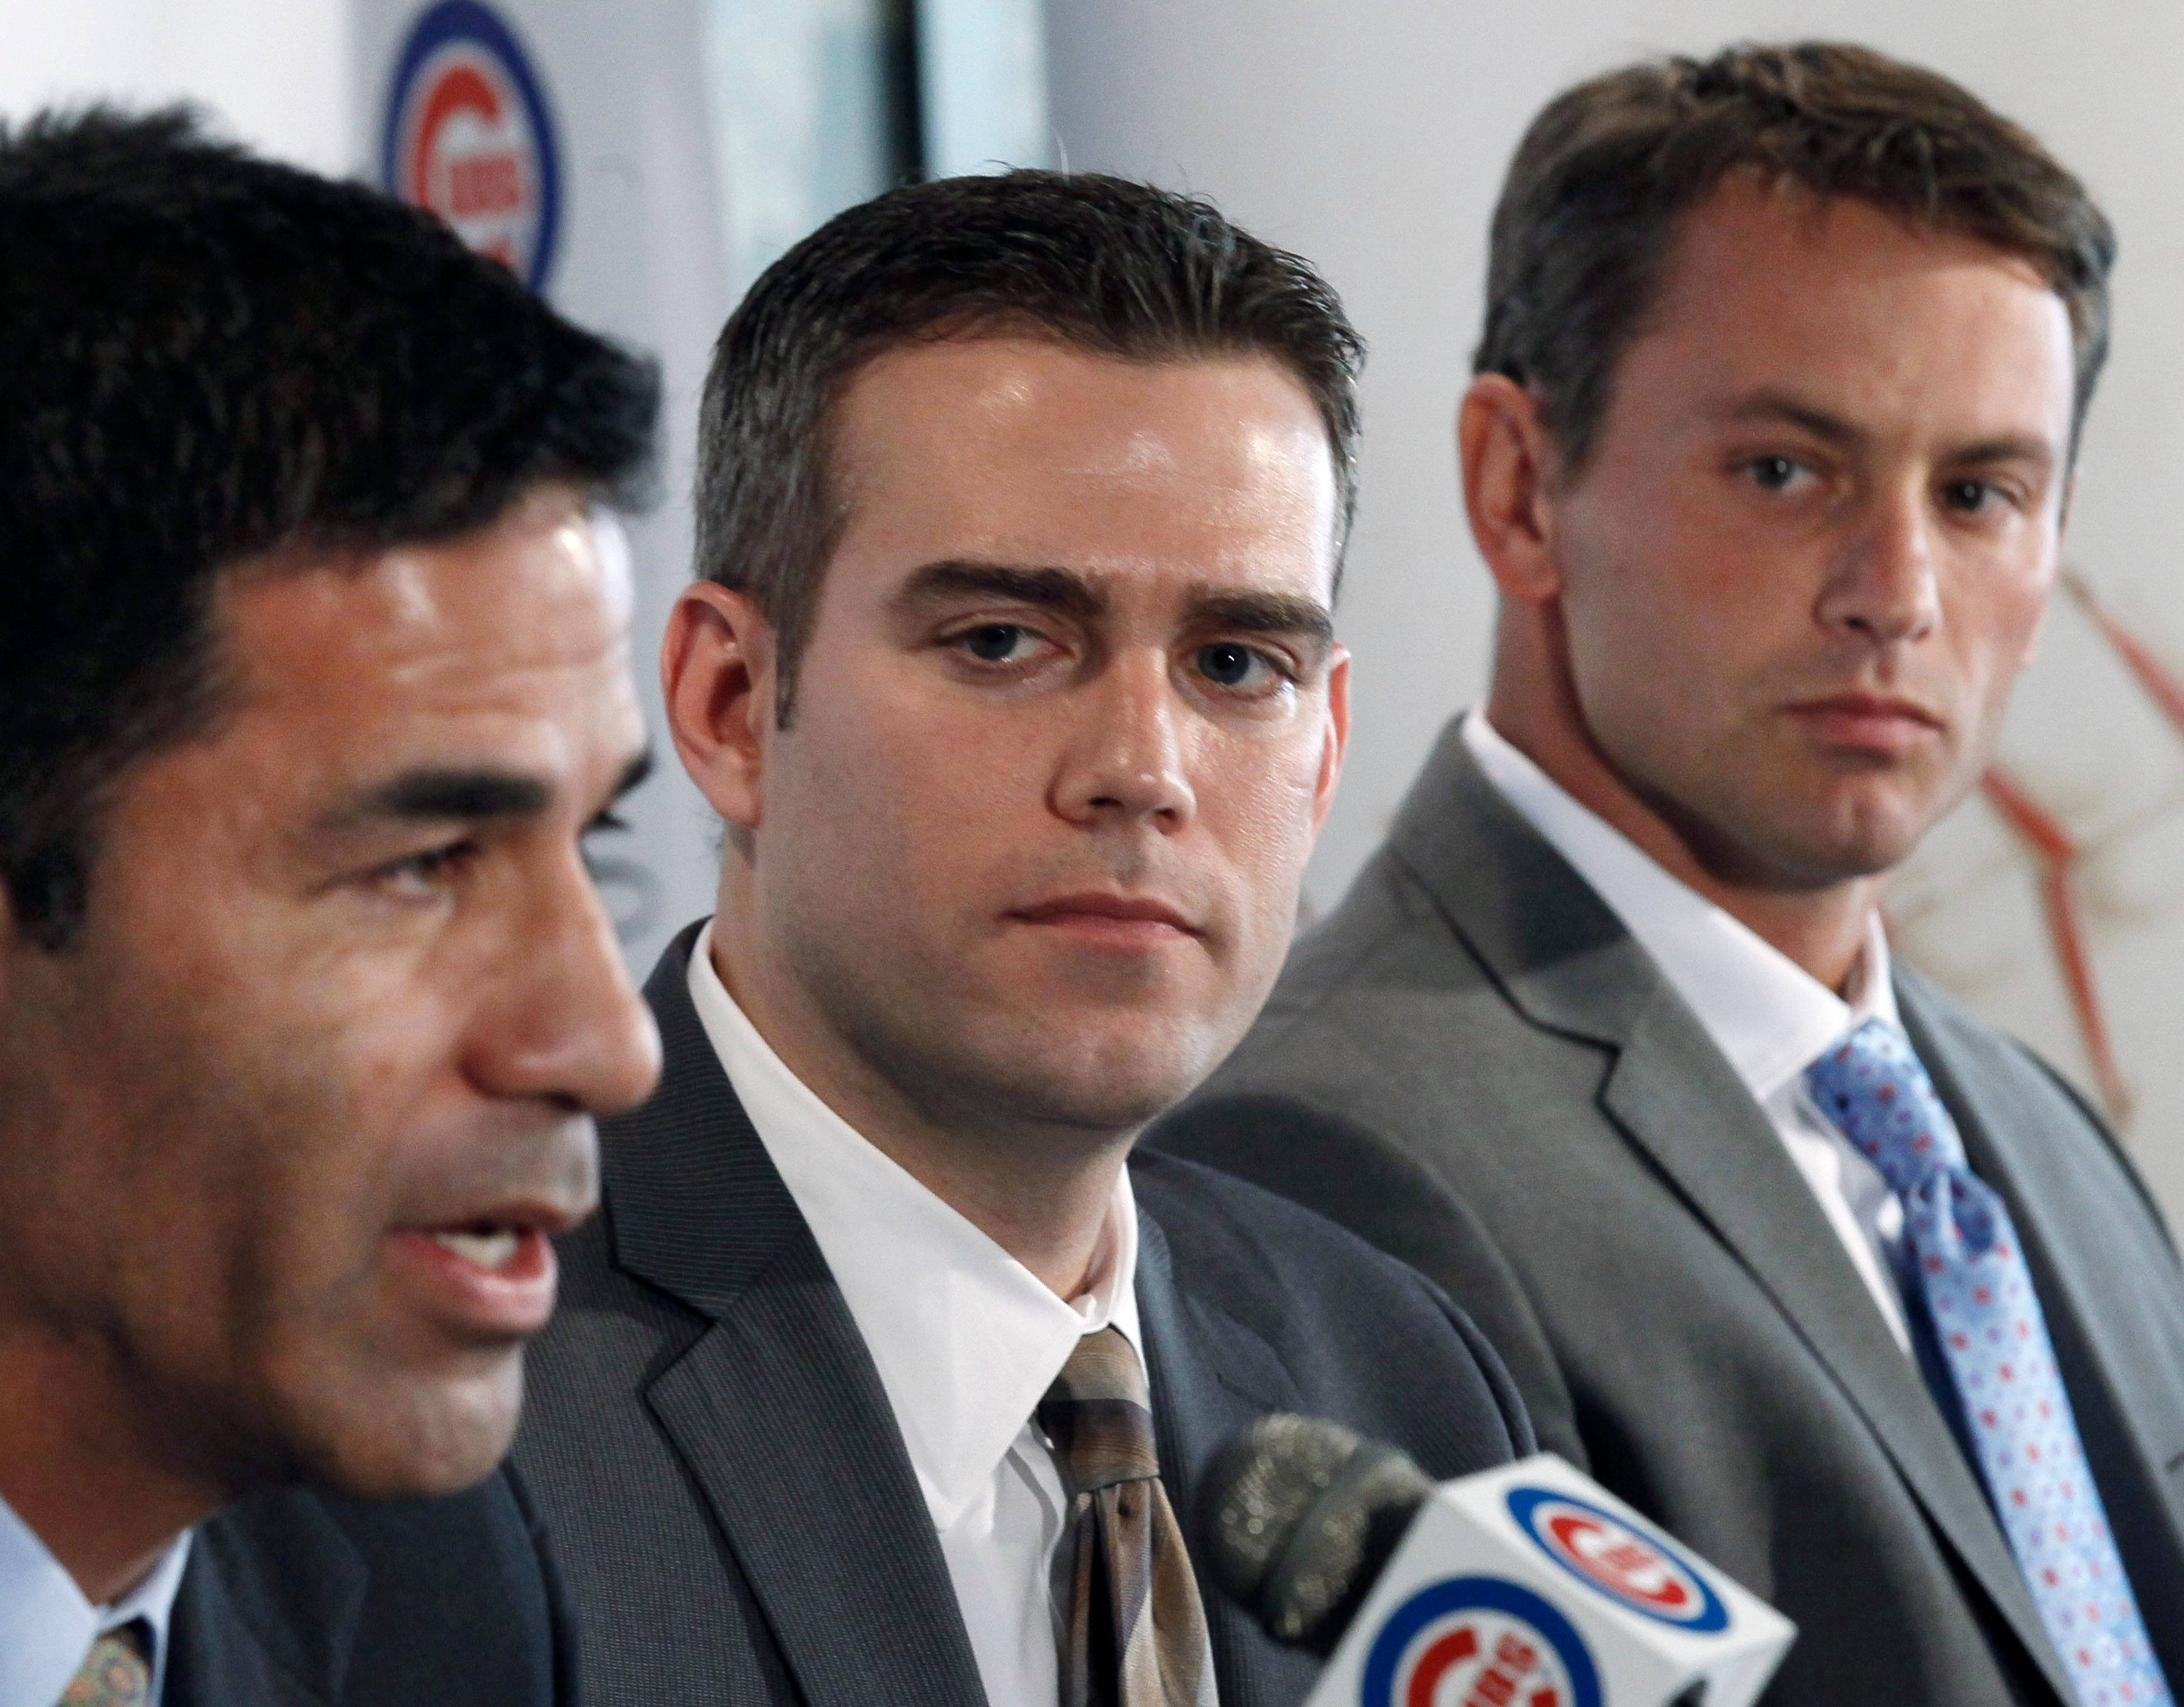 Chicago Cubs president of baseball operations Theo Epstein, center, and new general manager Jed Hoyer, right, listen to new head of scouting and player development Jason McLeod, during a news conference Tuesday, Nov. 1, 2011, in Chicago. Hoyer and McLeod are reuniting with Epstein, who also worked with the pair in Boston. (AP Photo/Charles Rex Arbogast)